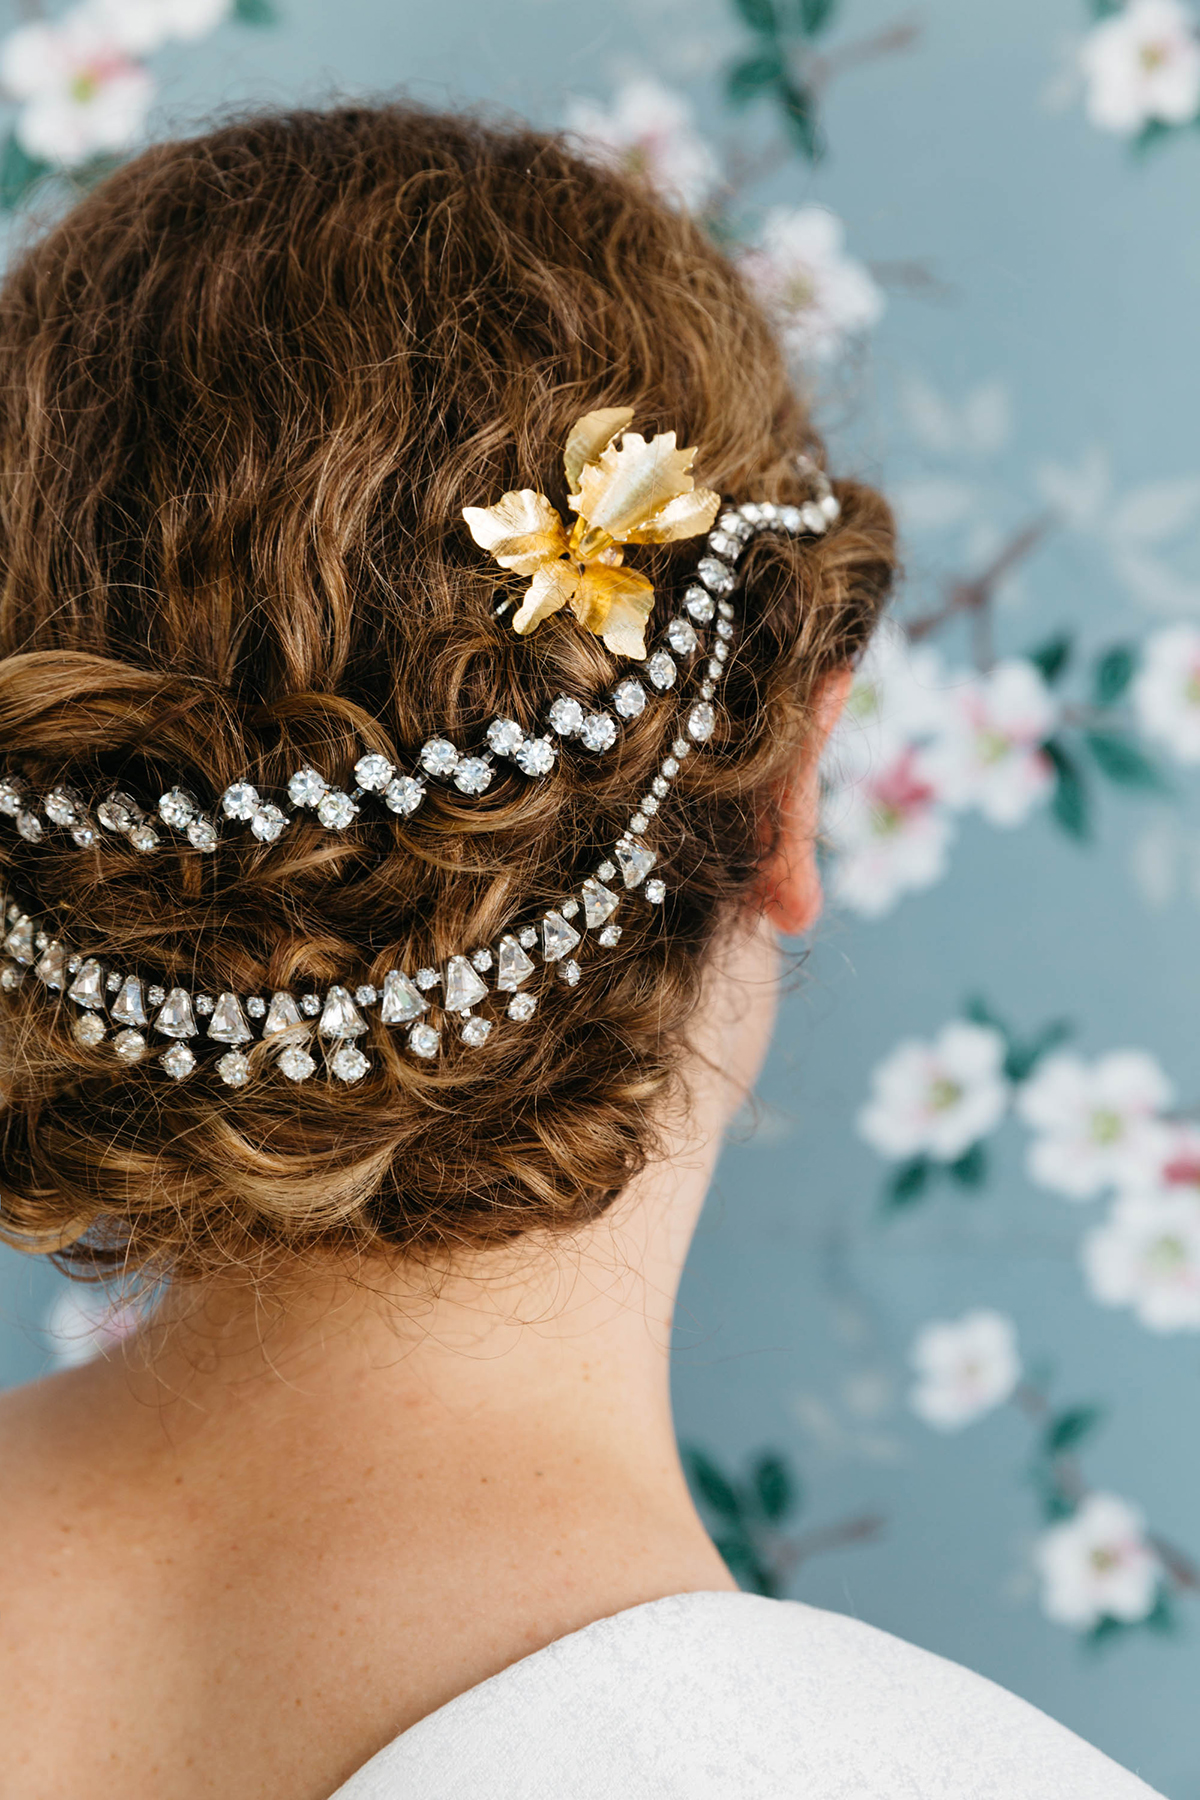 DIY-Hair-Accessories-With-Vintage-Jewelry-wallpaper-wp6002988